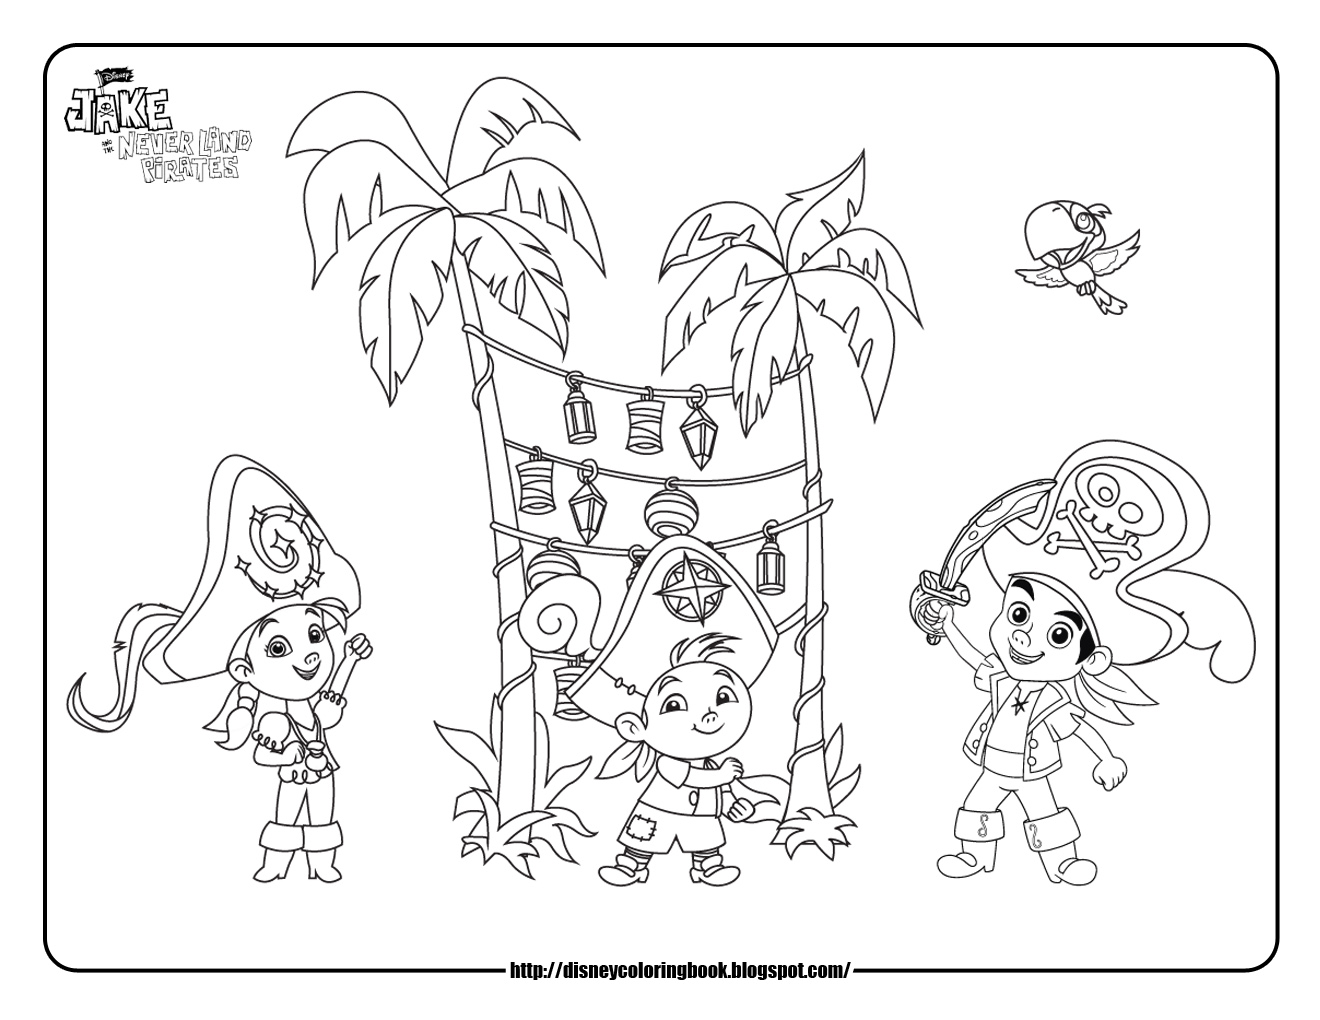 Jake and the neverland pirates 3 free disney coloring for Jake the pirate coloring pages